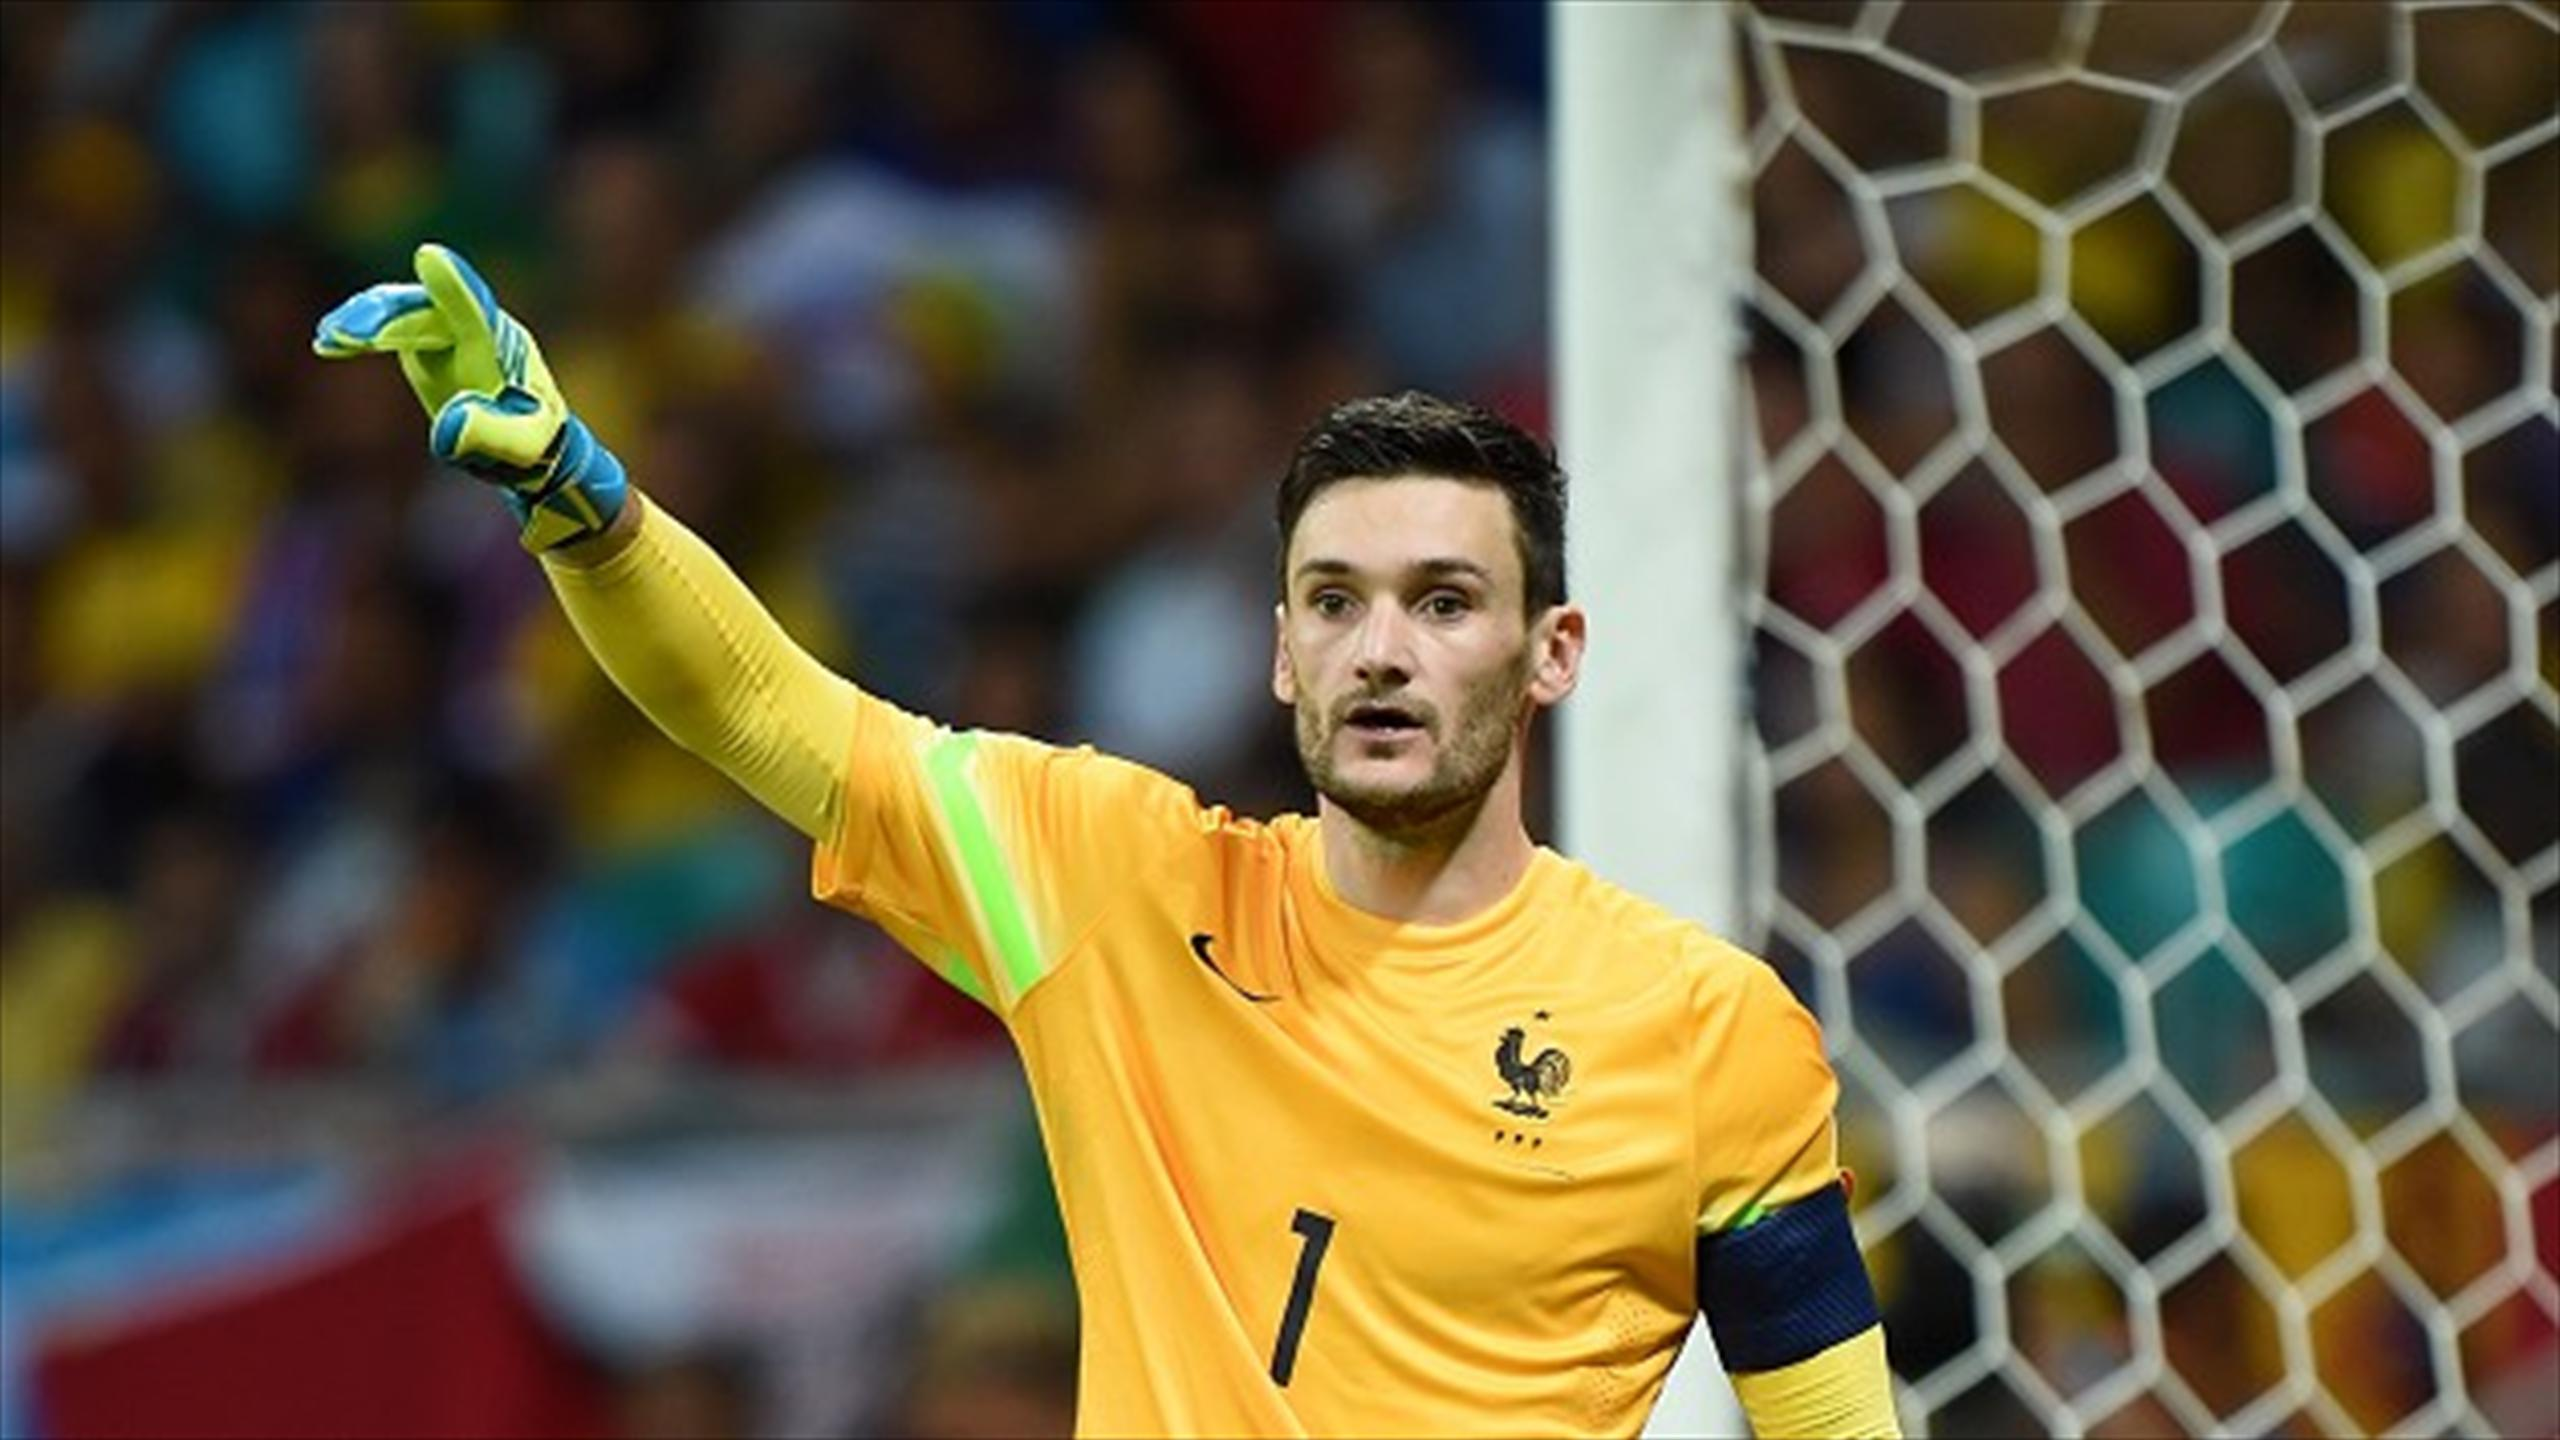 Hugo Lloris says there is no fear among the players ahead of the World Cup quarter-final against Germany